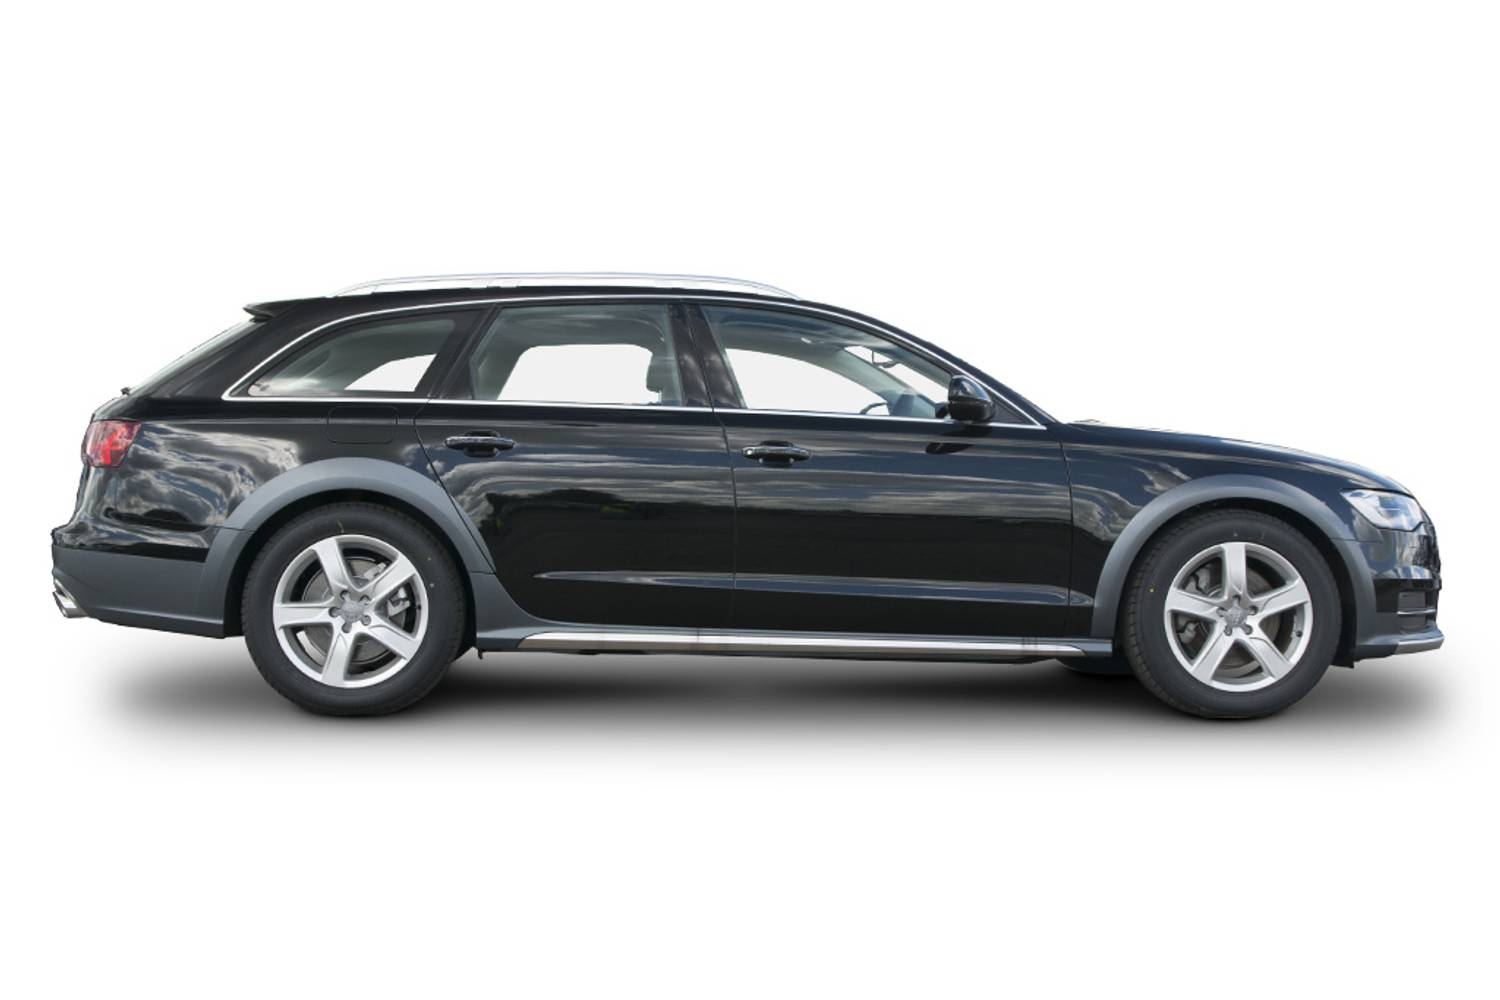 New Audi A6 Allroad Diesel Estate 3 0 Bitdi Quattro 5 Door